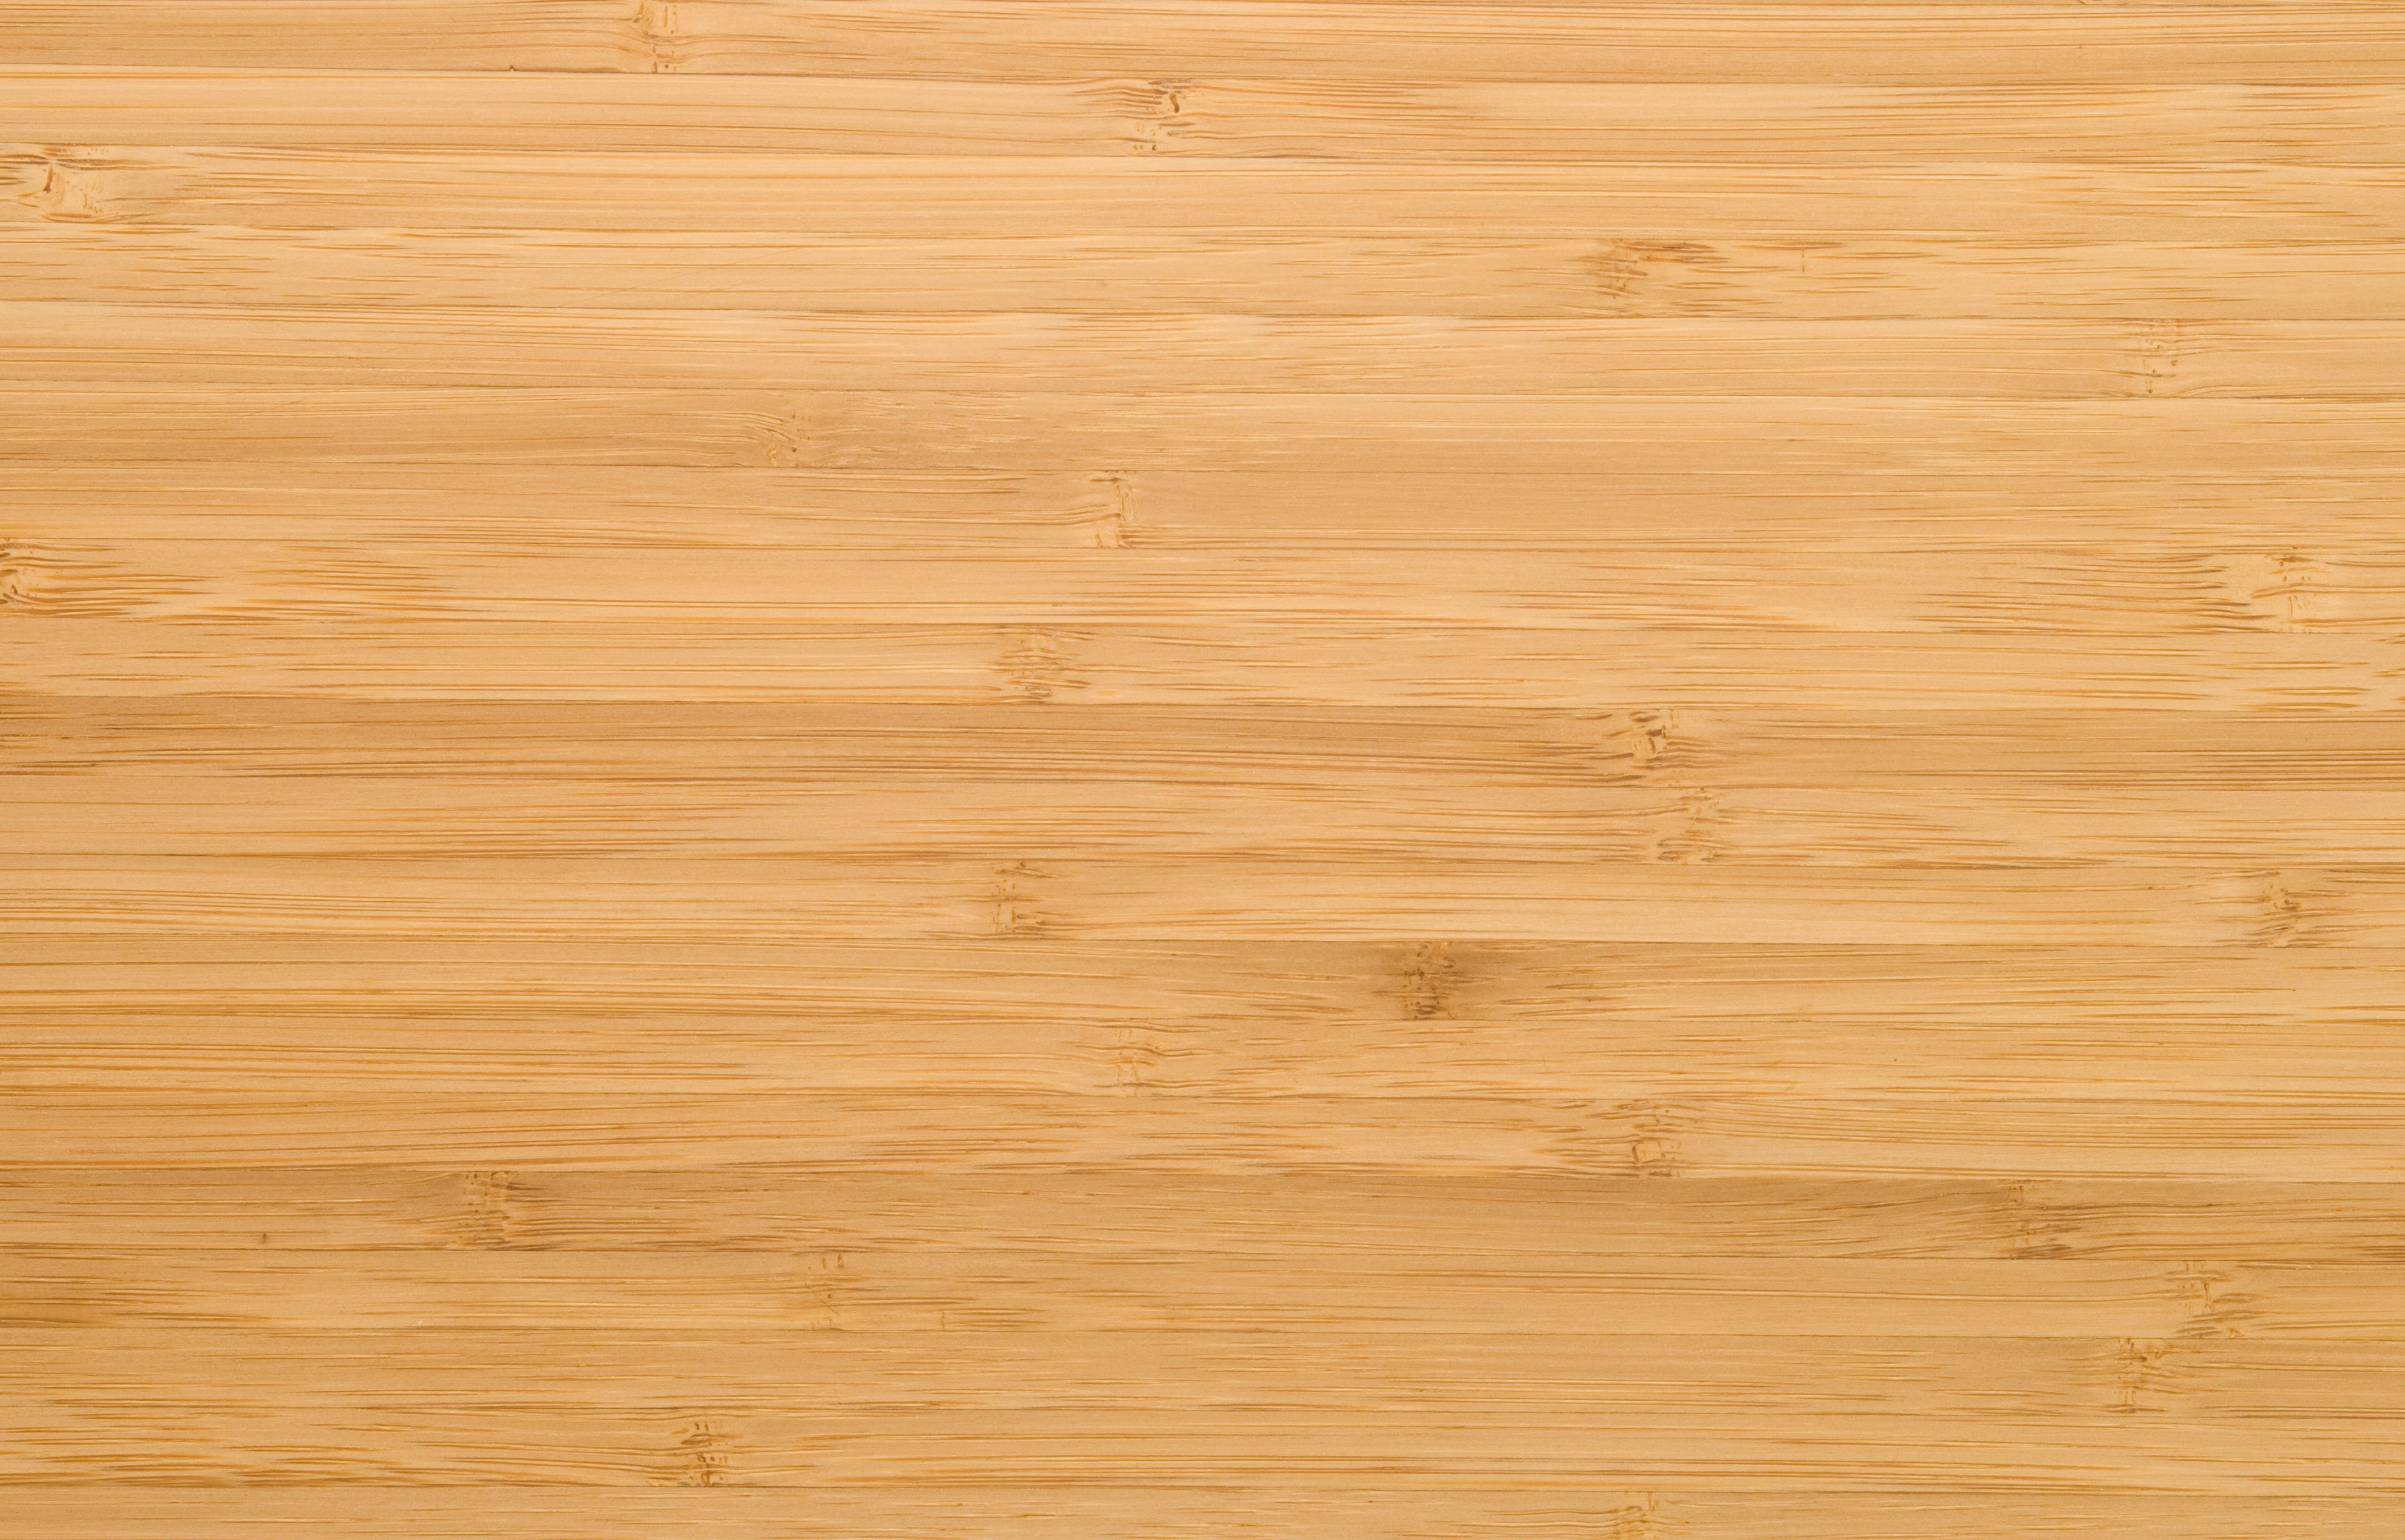 Tiger Maple Hardwood Flooring Of 31 Unique Bamboo Vs Hardwood Flooring Photograph Flooring Design Ideas Intended for Bamboo Vs Hardwood Flooring Luxury Cleaning and Maintaining Bamboo Floors Gallery Of 31 Unique Bamboo Vs